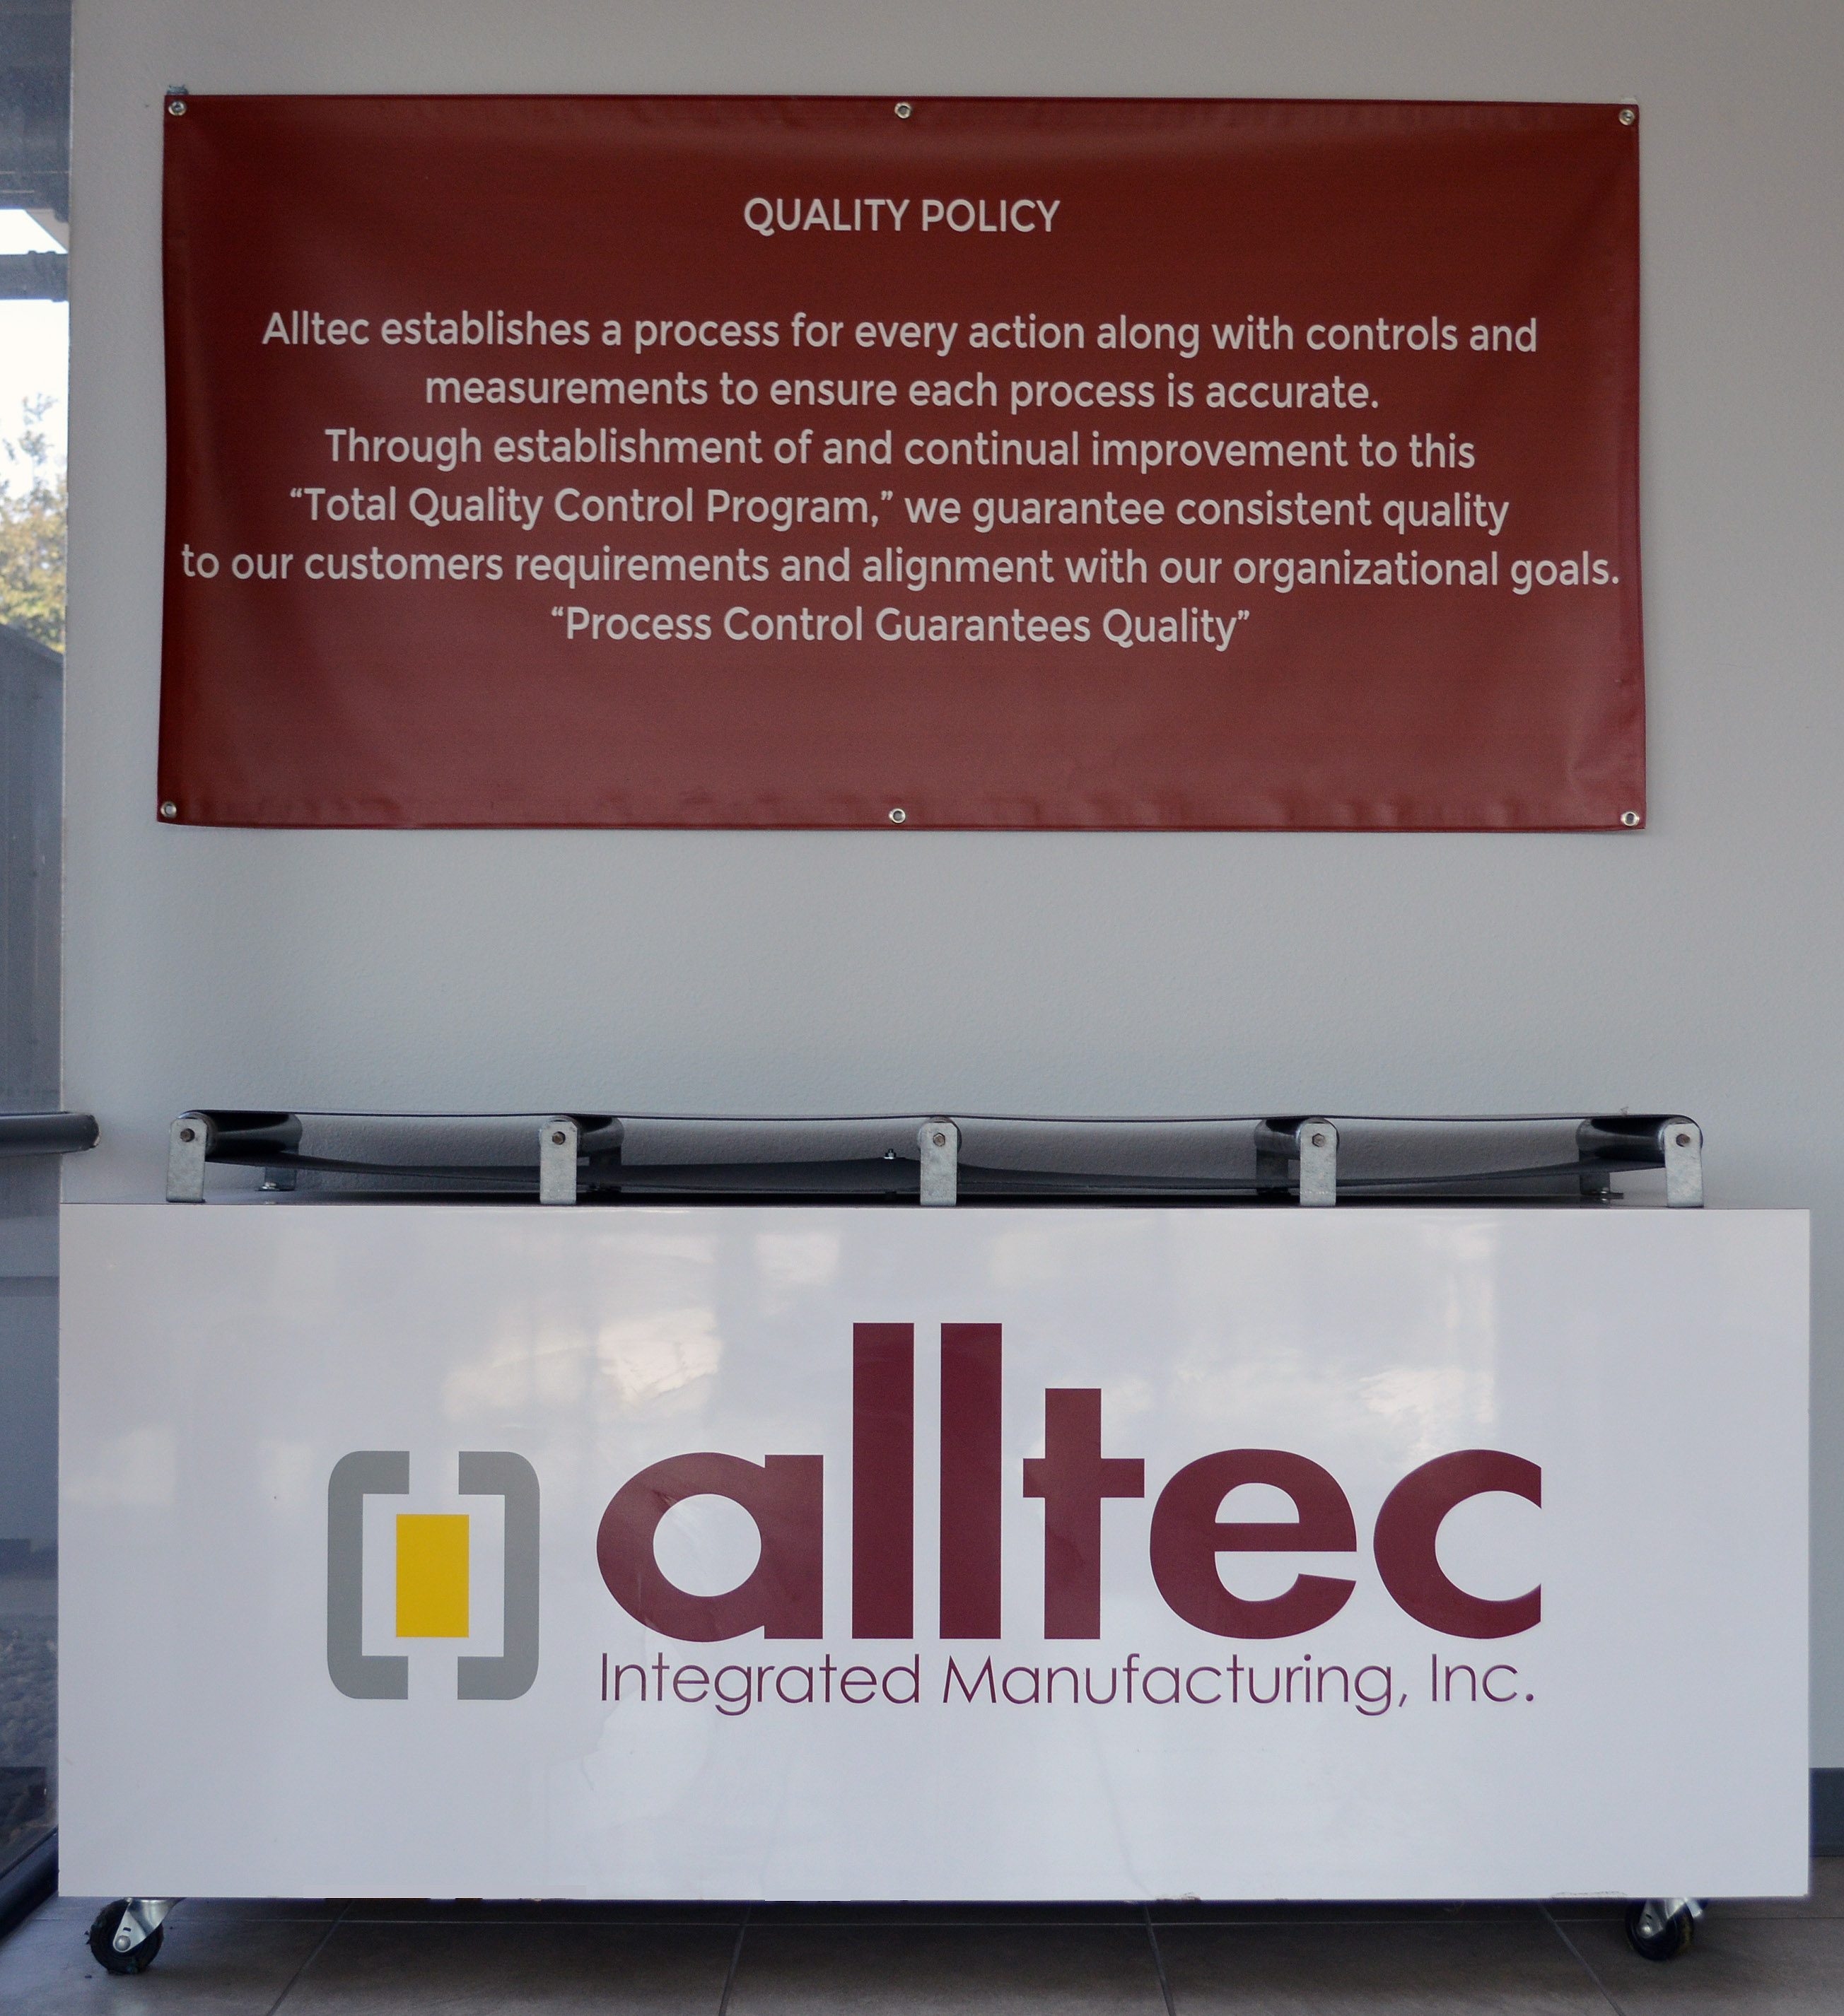 ALLTEC QUALITY POLICY